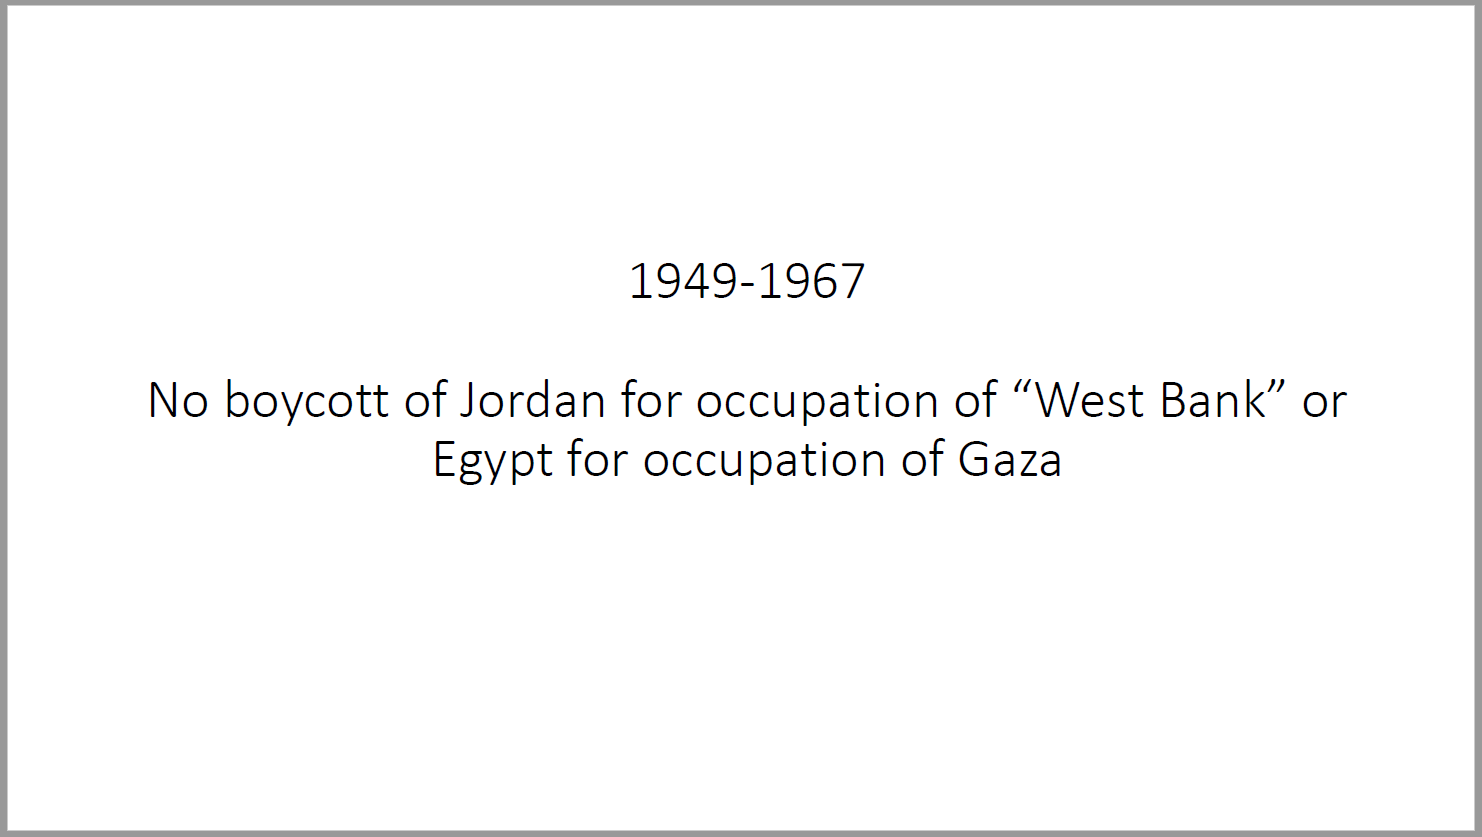 bds-history-slide-arab-league-no-boycott-jordan-egypt